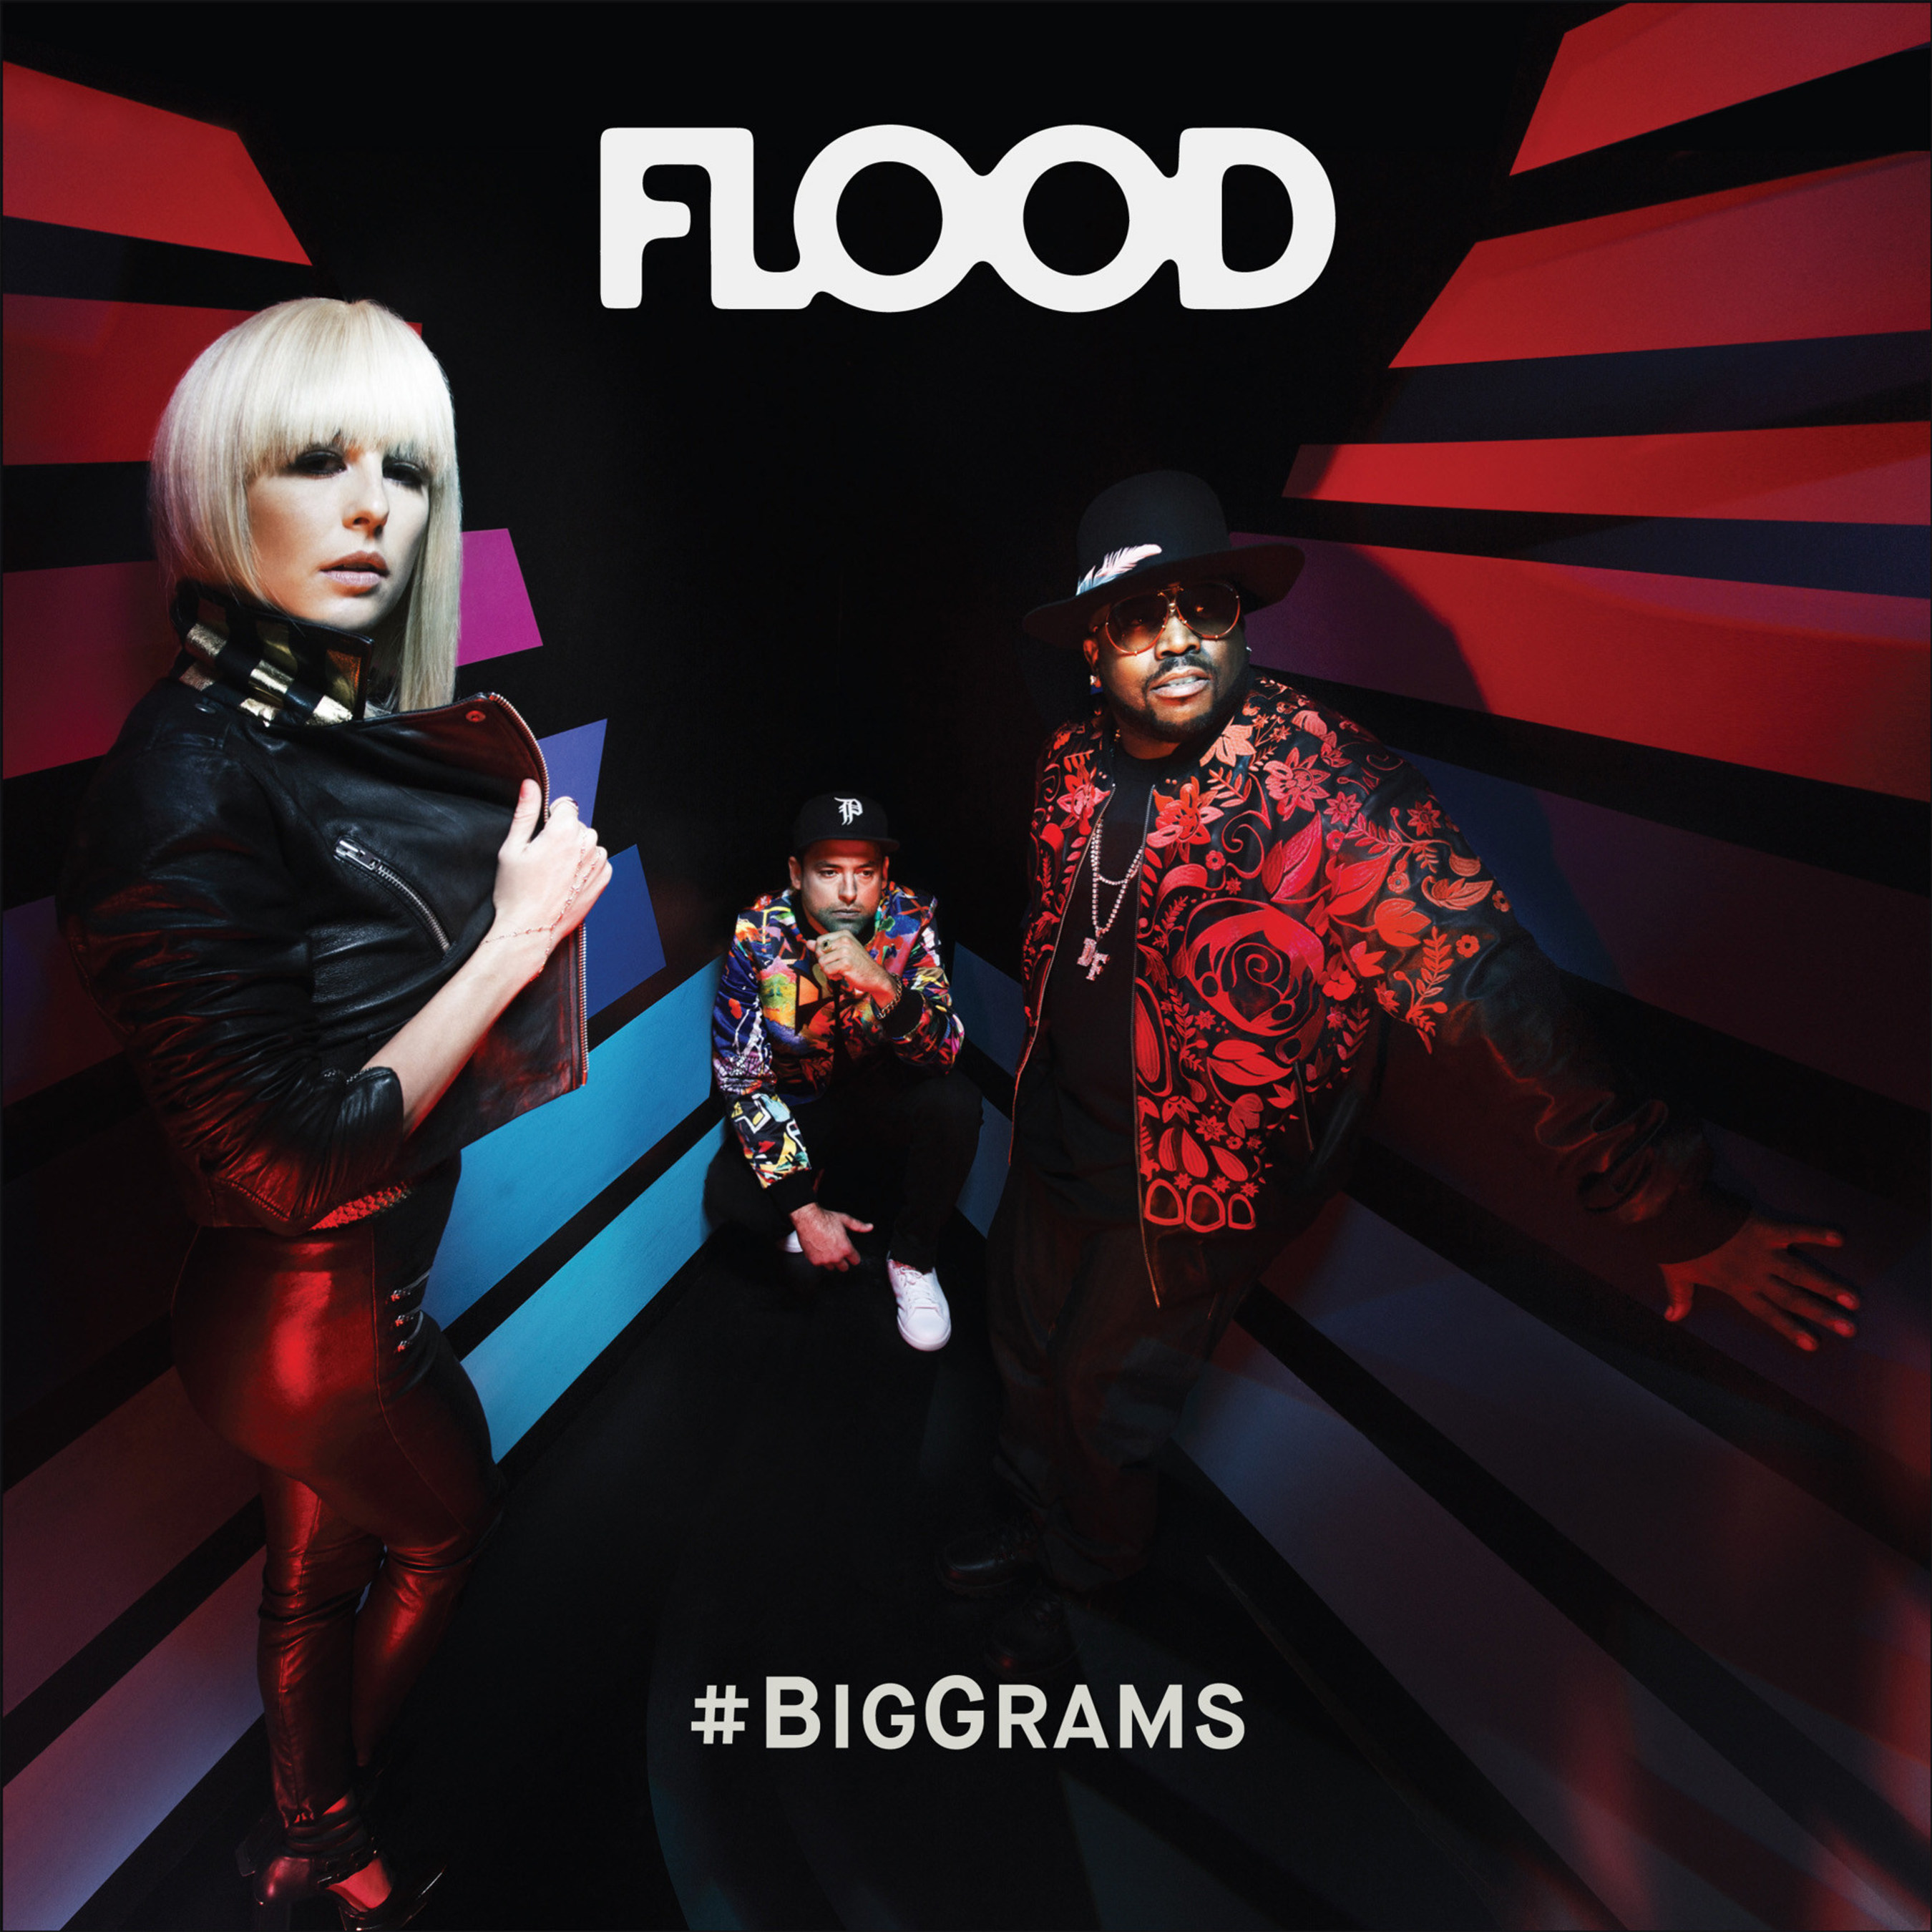 FLOOD MAGAZINE RELEASES SECOND PRINT ISSUE